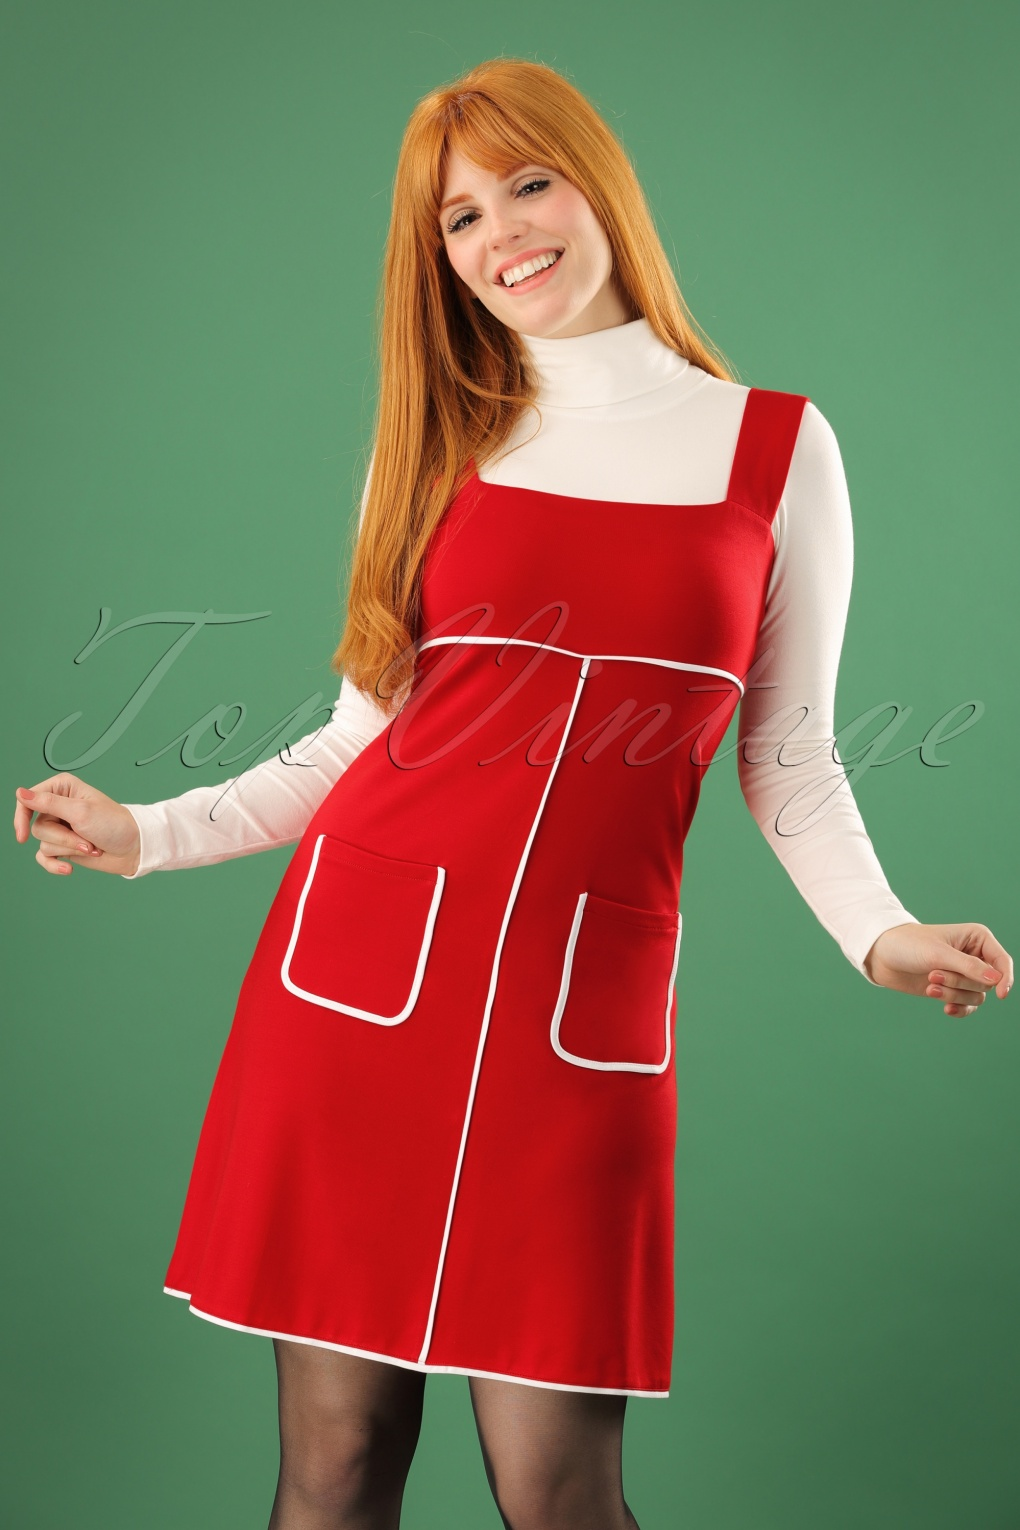 1960s Mad Men Dresses and Clothing Styles 60s Cindy Studio 64 Pinafore Dress in Red £37.93 AT vintagedancer.com